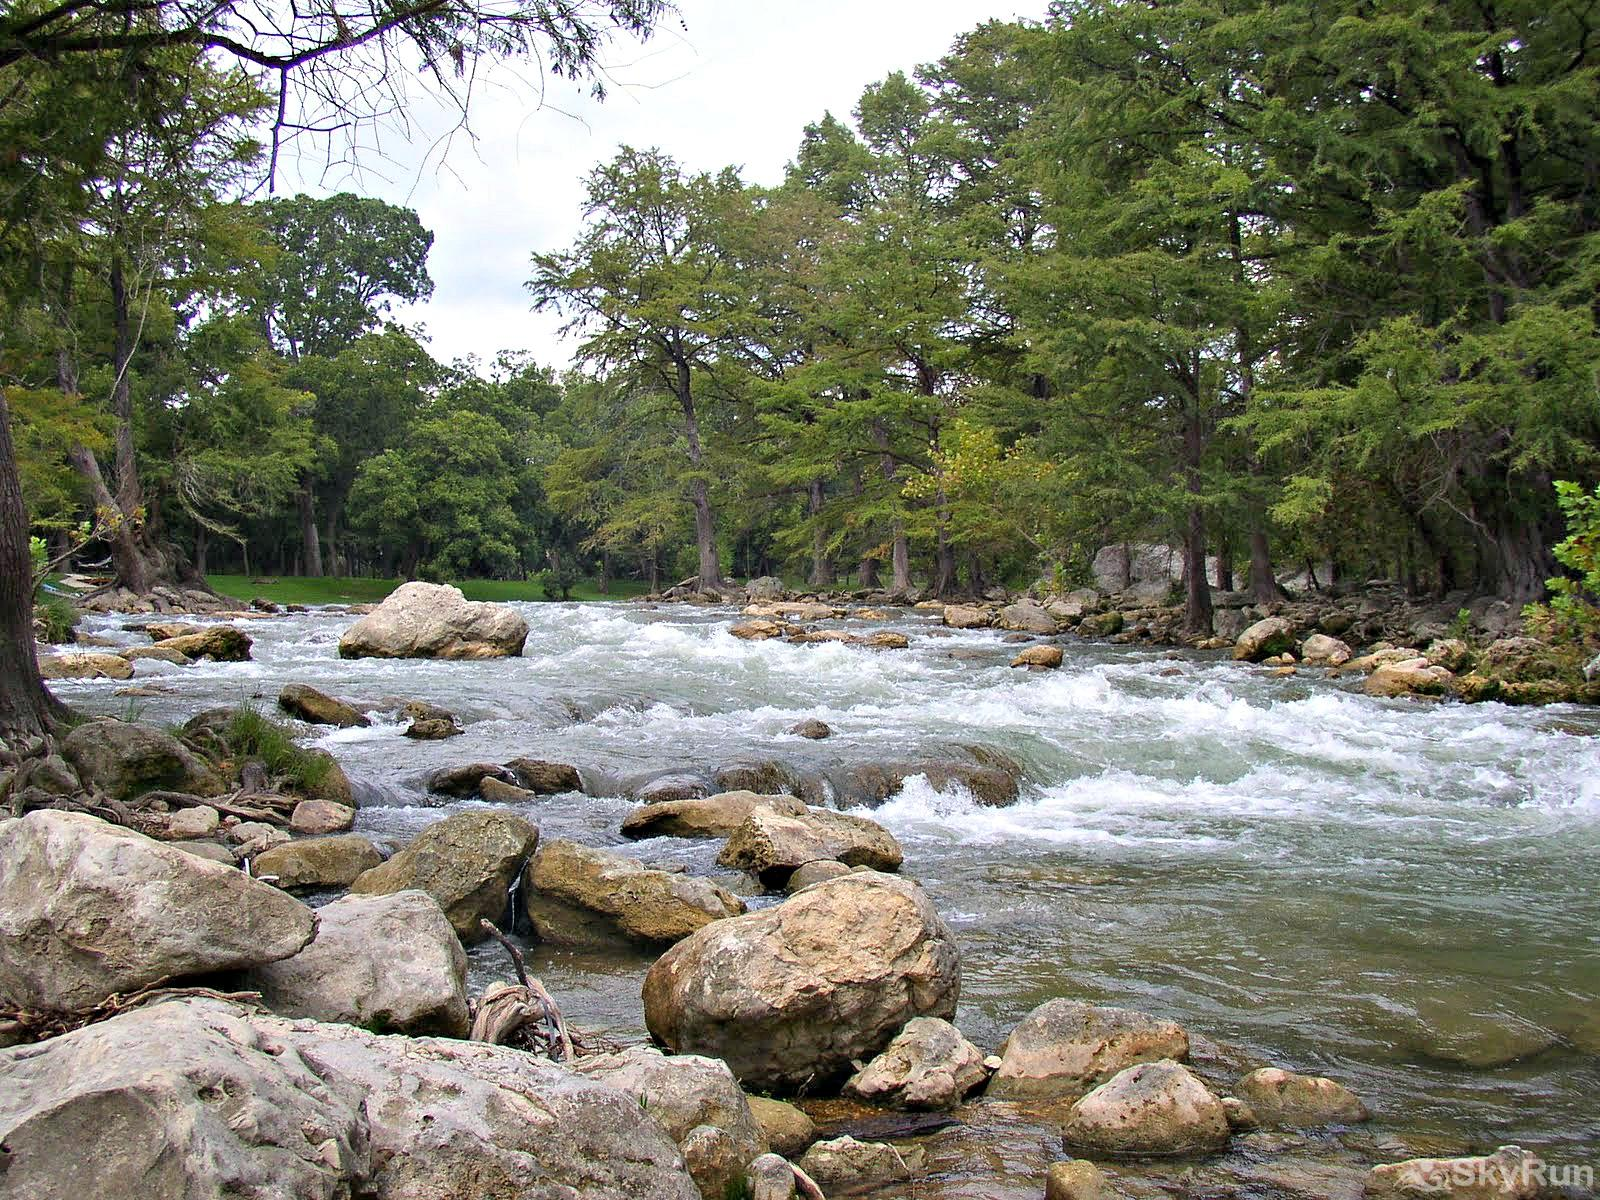 LEDGEROCK POINTE The cool, refreshing Guadalupe River